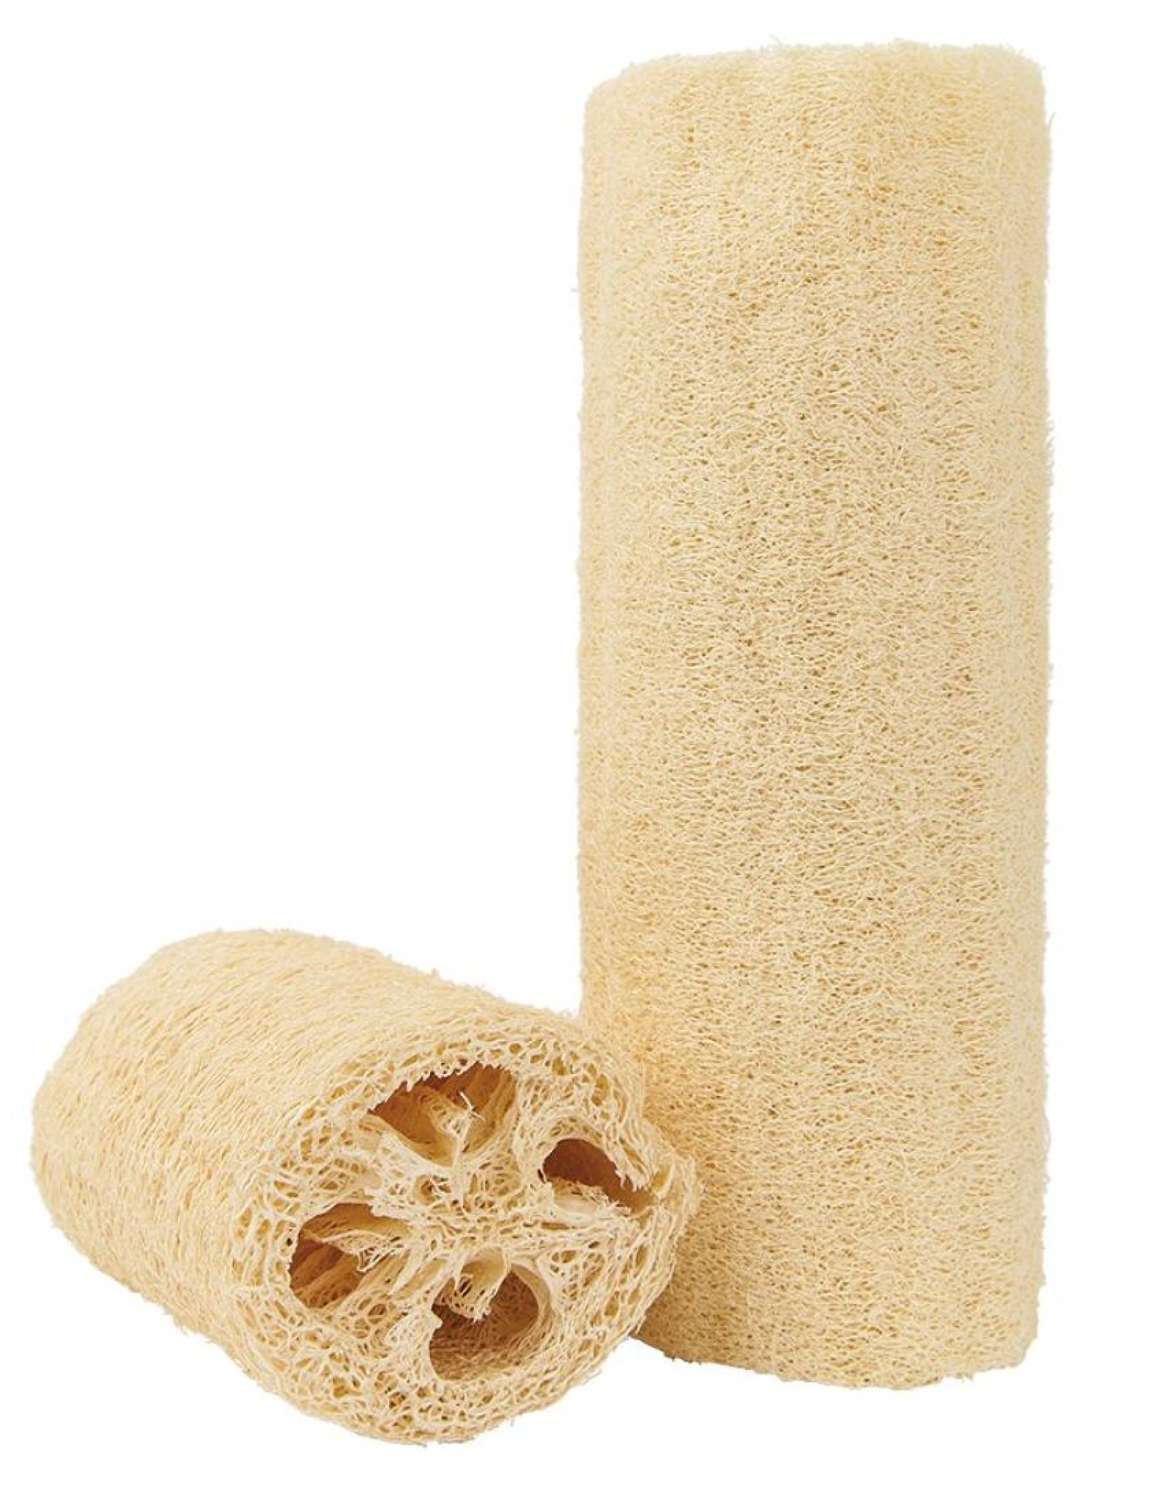 100% Natural Loofah - 45-50cm long